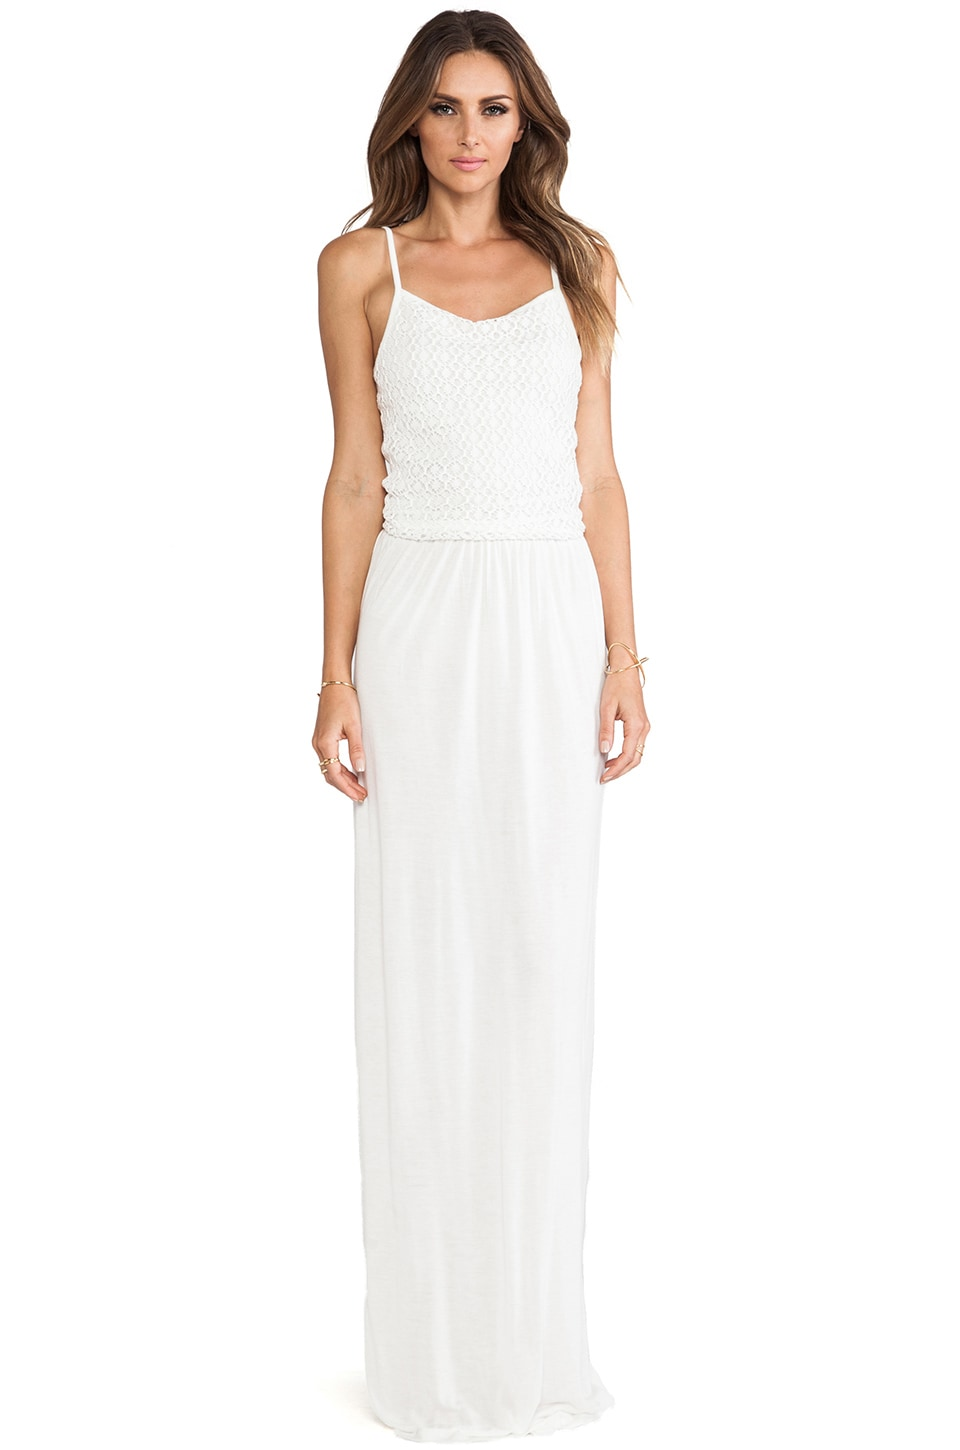 MM Couture by Miss Me Maxi Dress in White